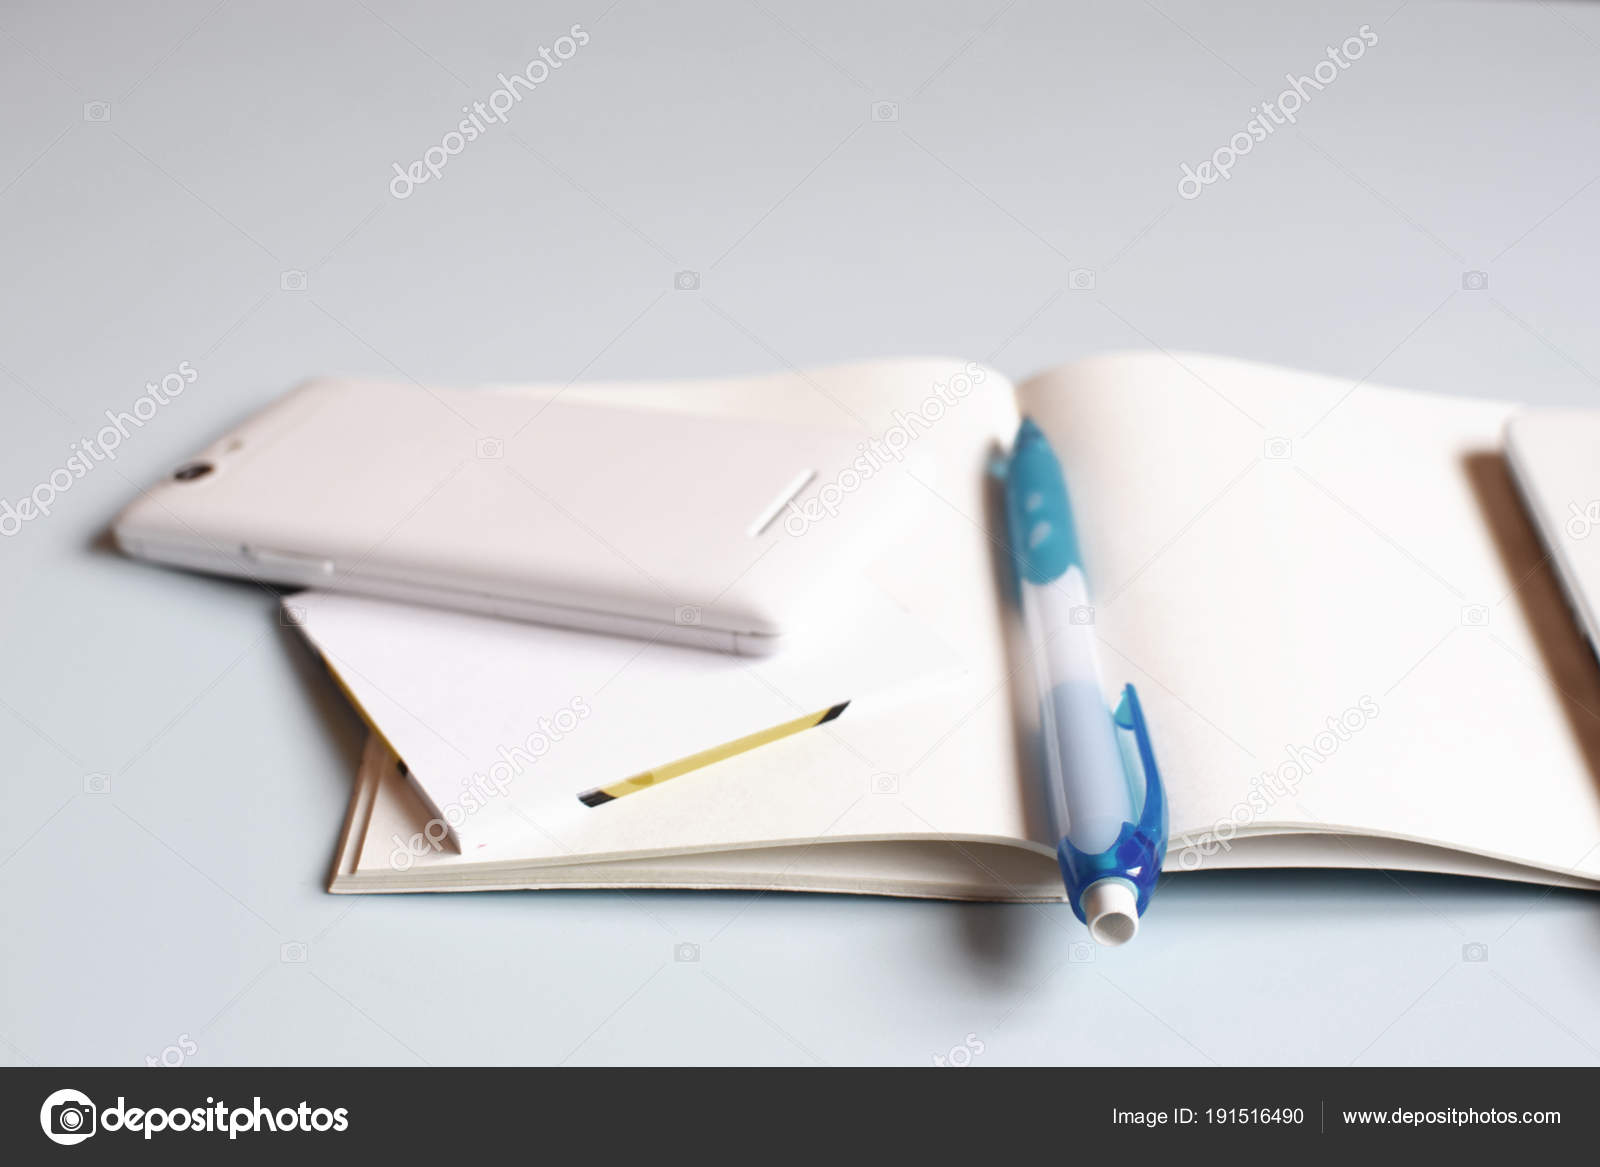 Office Desk Table Notebook Smart Phone Tablet Pen Top View Stock Photo C Ingae 191516490